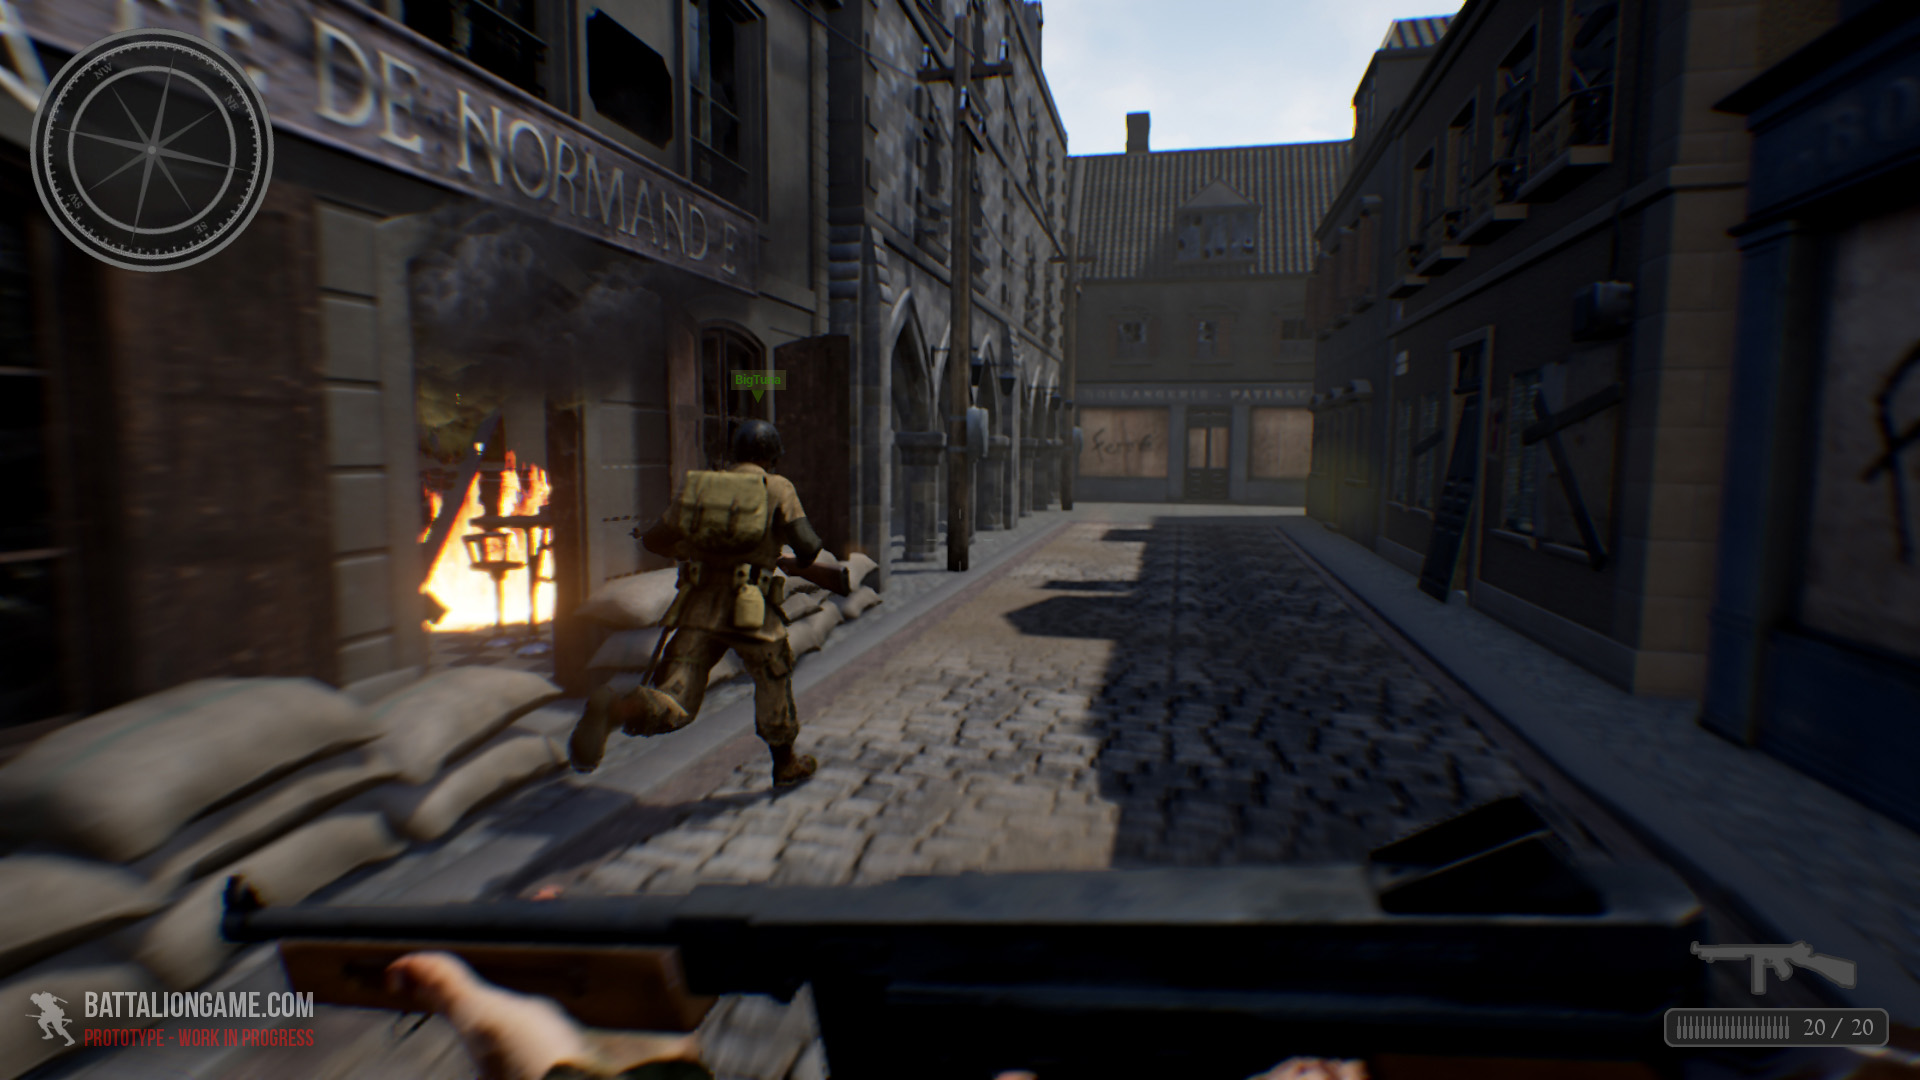 Is it time for first-person shooters to go back to WWII